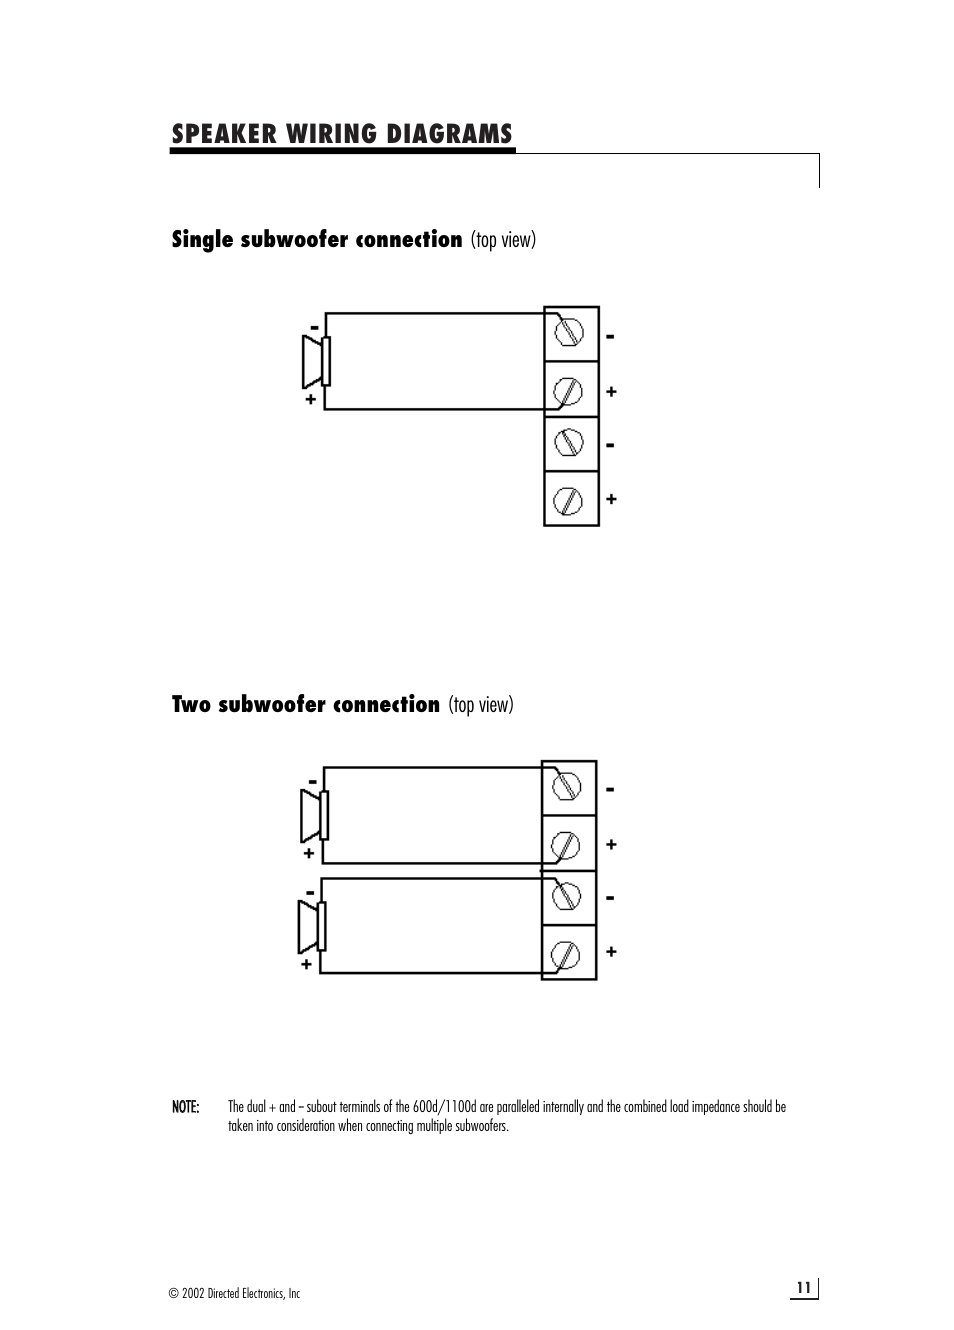 directed electronics wiring diagrams land rover lightweight diagram speaker 1100d user manual page 11 20